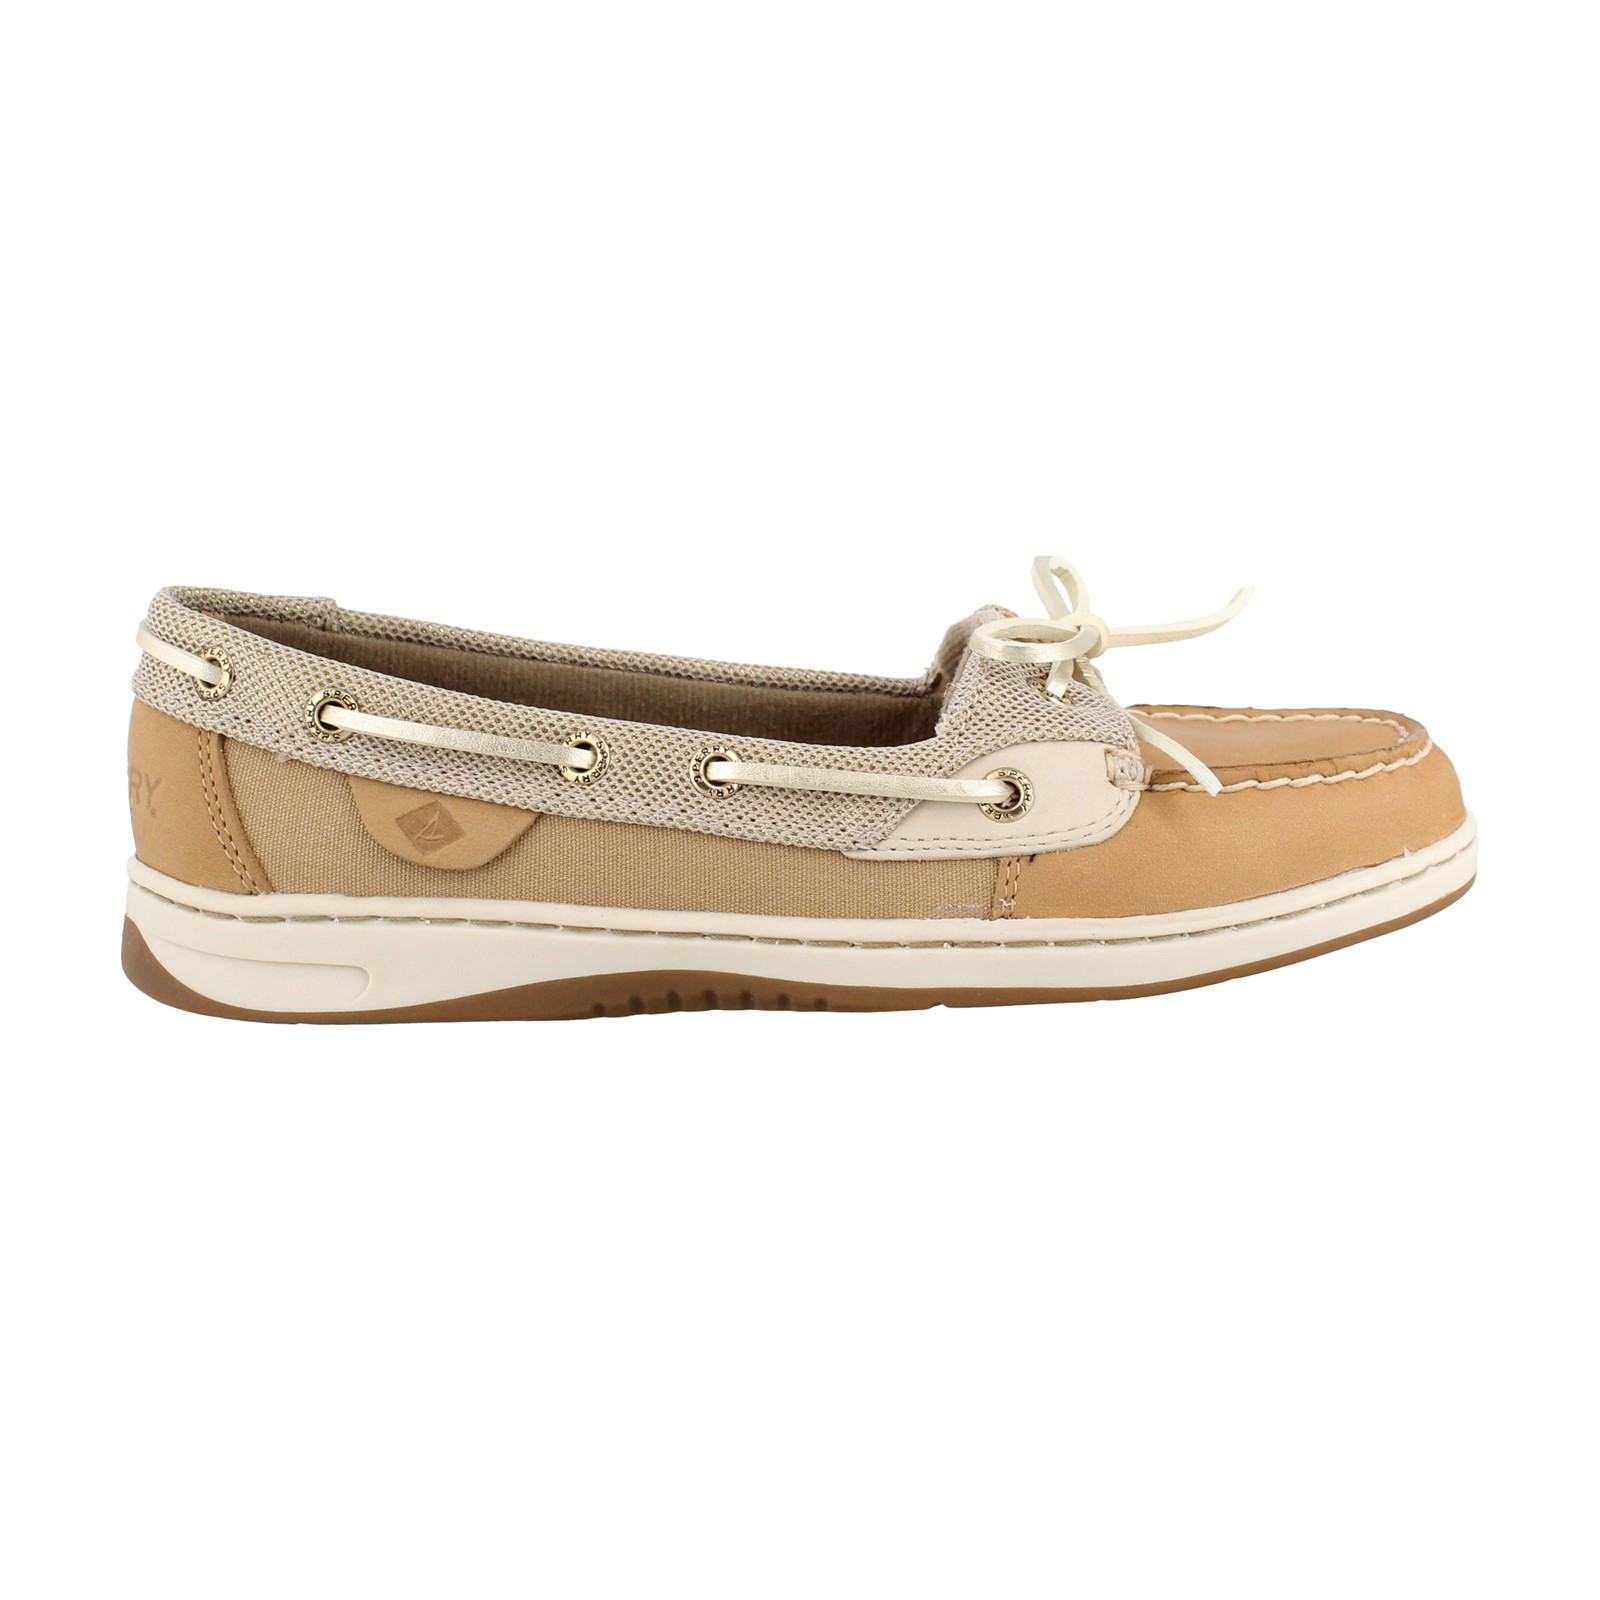 Women's Sperry, Angelfish Boat Shoes